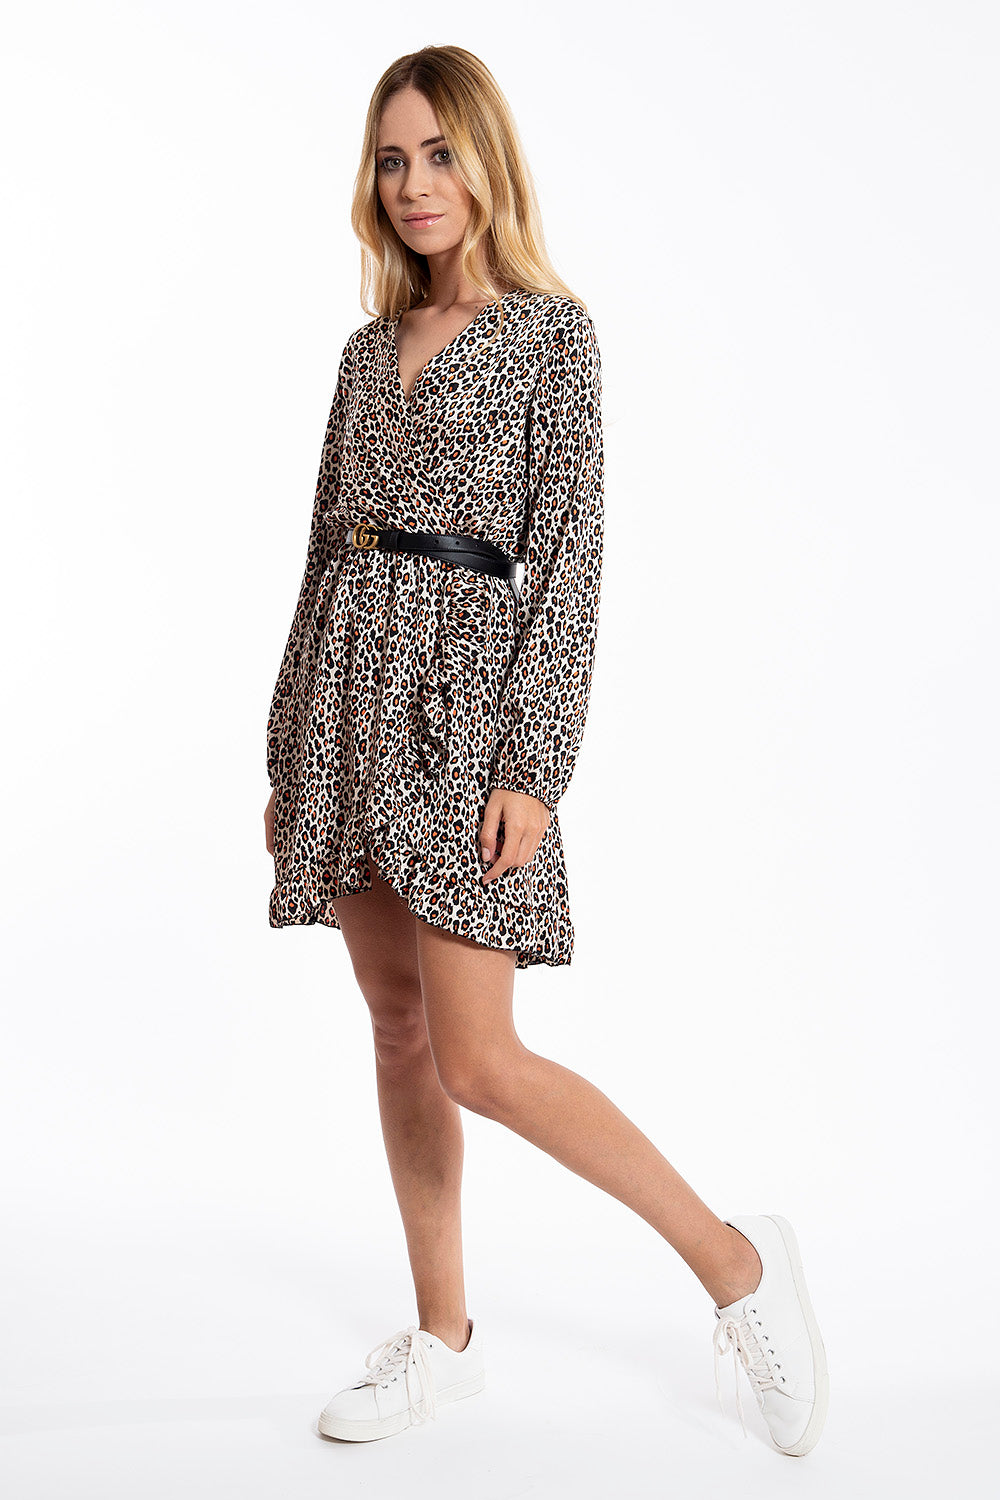 Thin long sleeves leopard dress with elasticated waist and frills